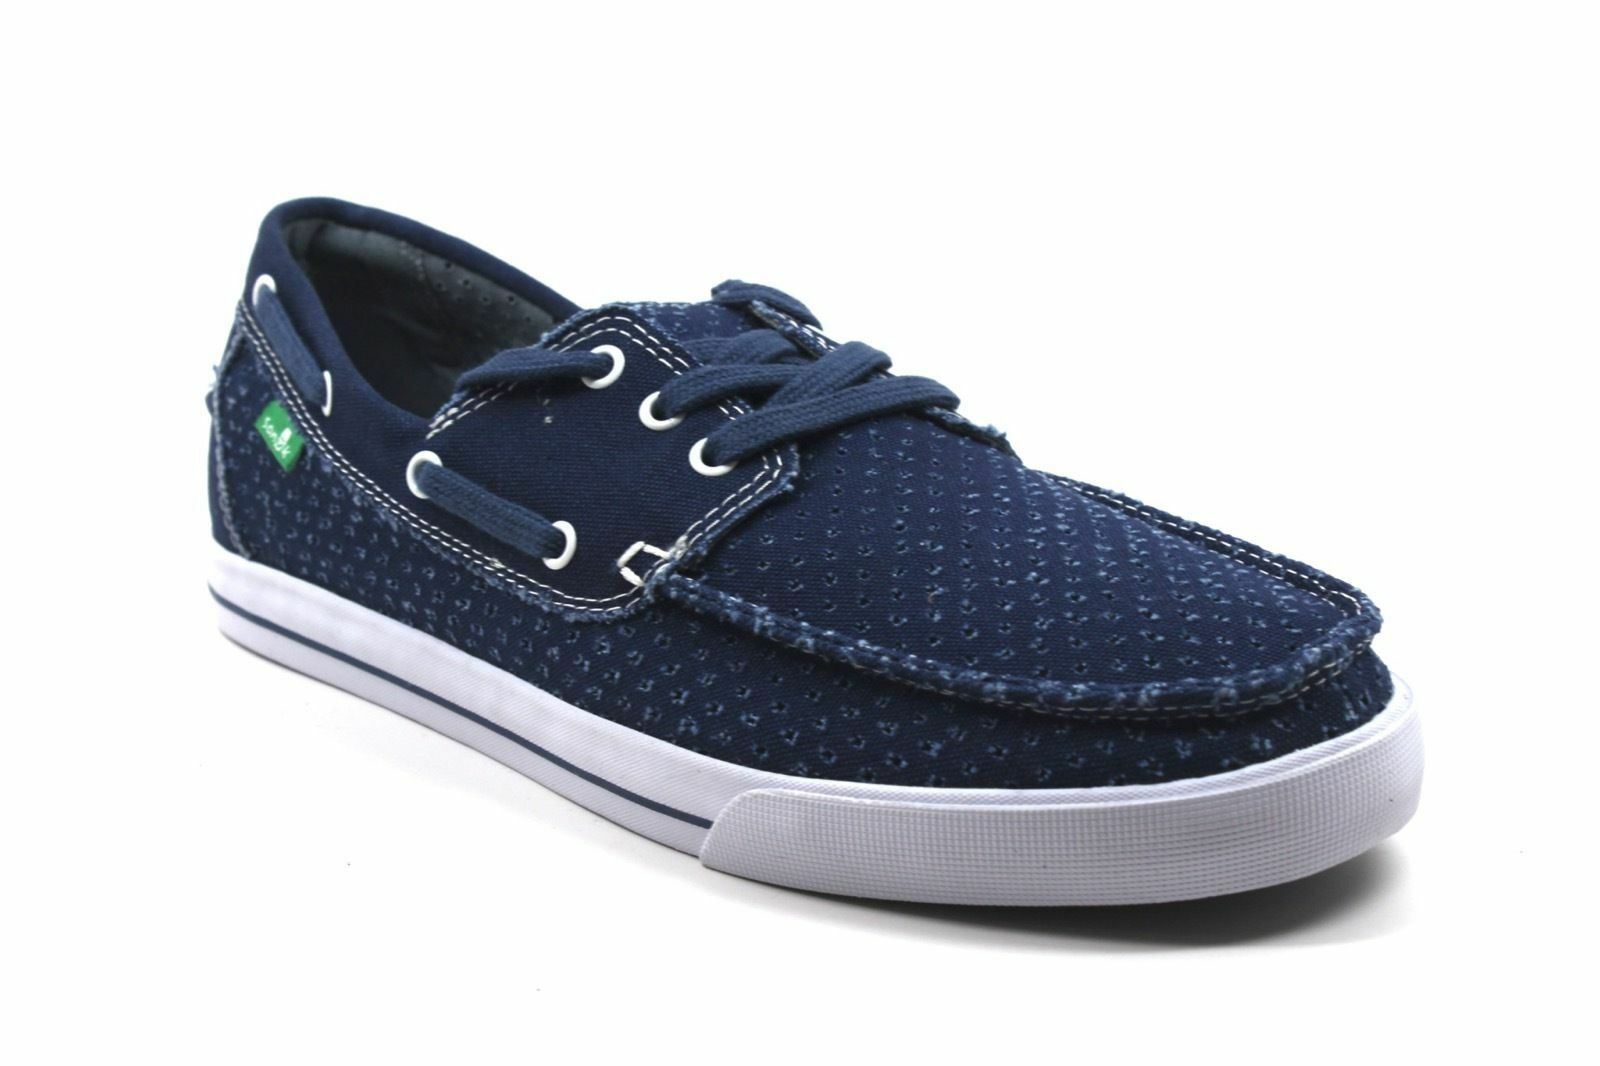 2018 NWOB MENS SANUK THE SEA MAN PERF SHOES  9 navy classic boat style